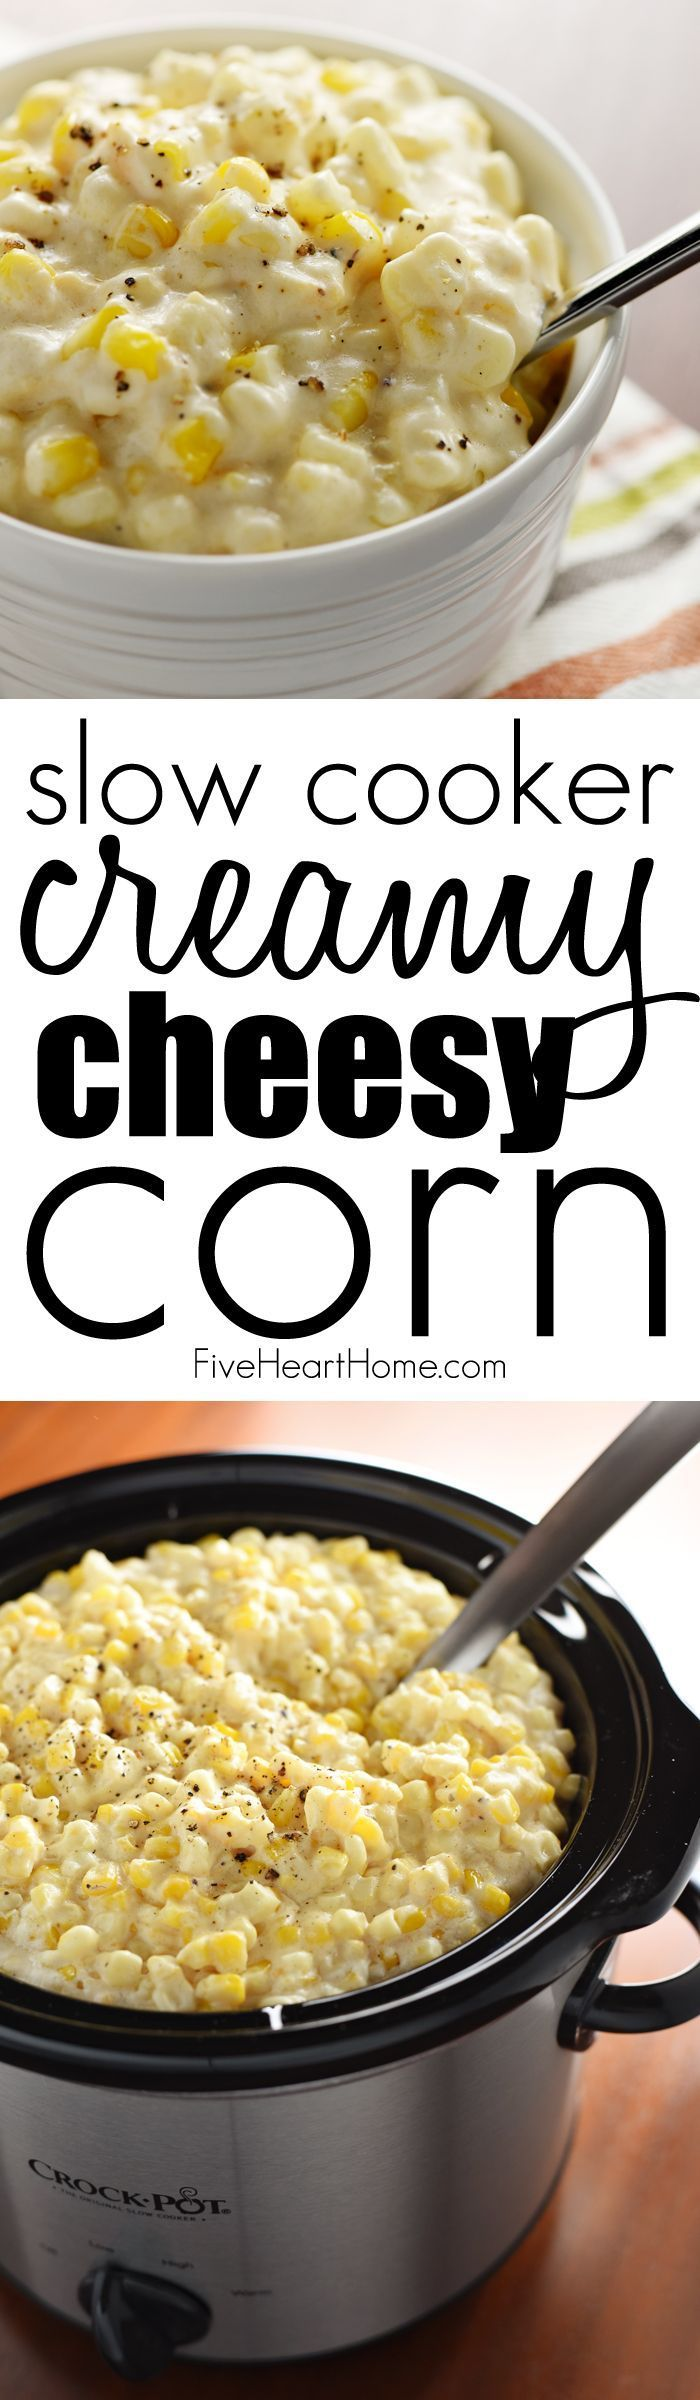 Slow Cooker Creamy Cheesy Corn ~ a rich, comforting side dish that's the perfect addition to any holiday menu...because not only is this recipe delicious, but it also frees up the stove and oven! | http://FiveHeartHome.com